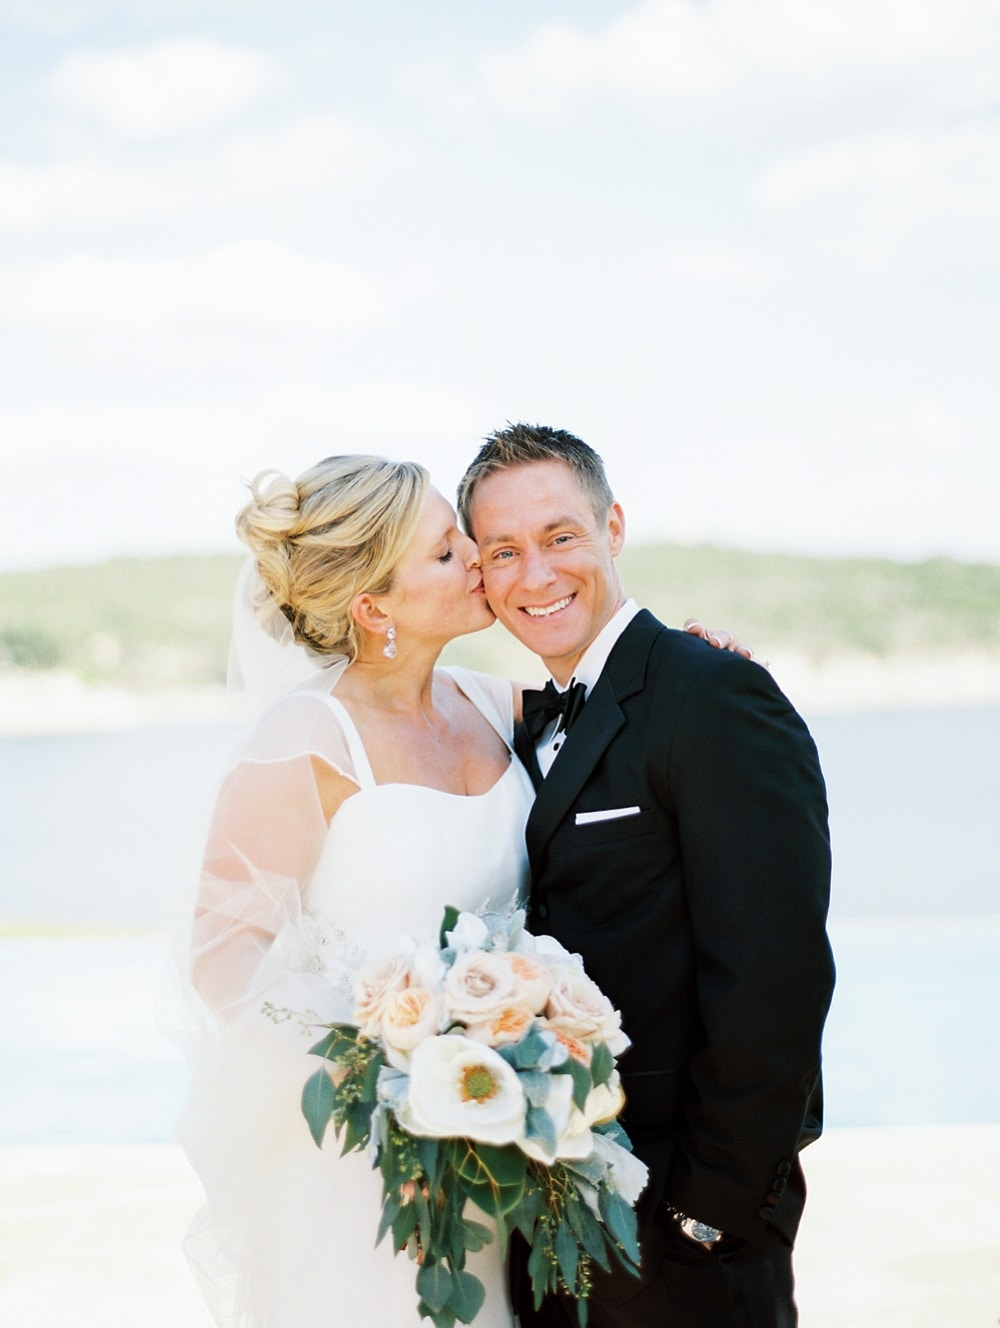 Kristin-La-Voie-Photography-Austin-Wedding-Photographer-lake-travis-246